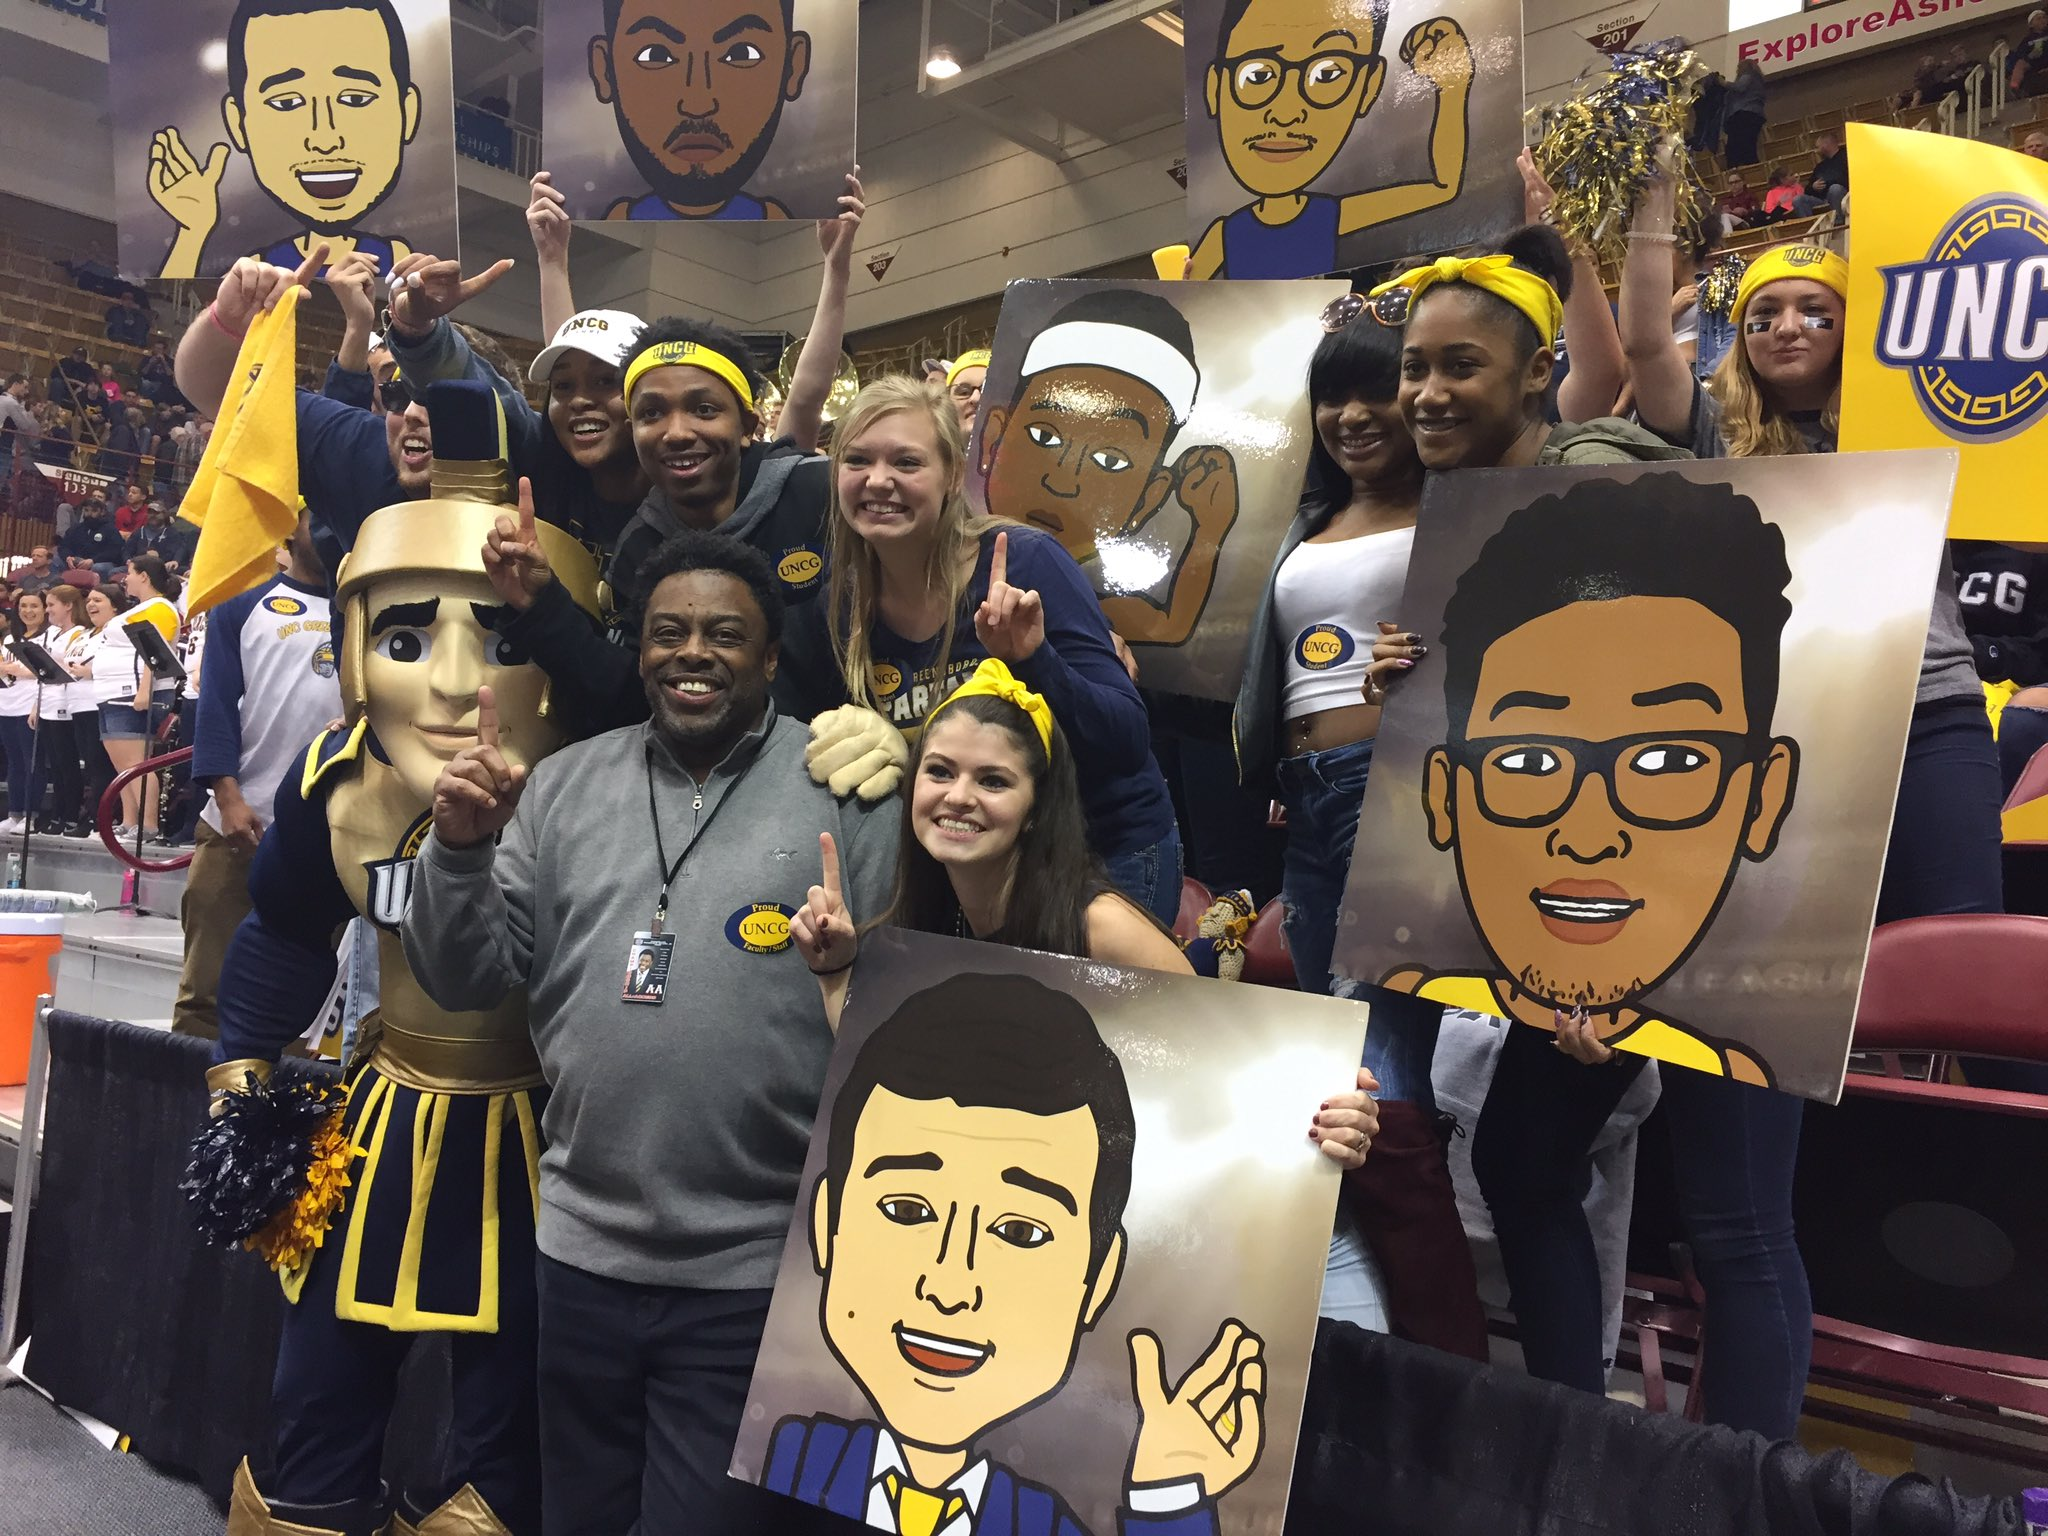 #chancellorgilliam with the best @uncg fans!!! #letsgoG #uncg @uncgsports https://t.co/jXixzUD6D5